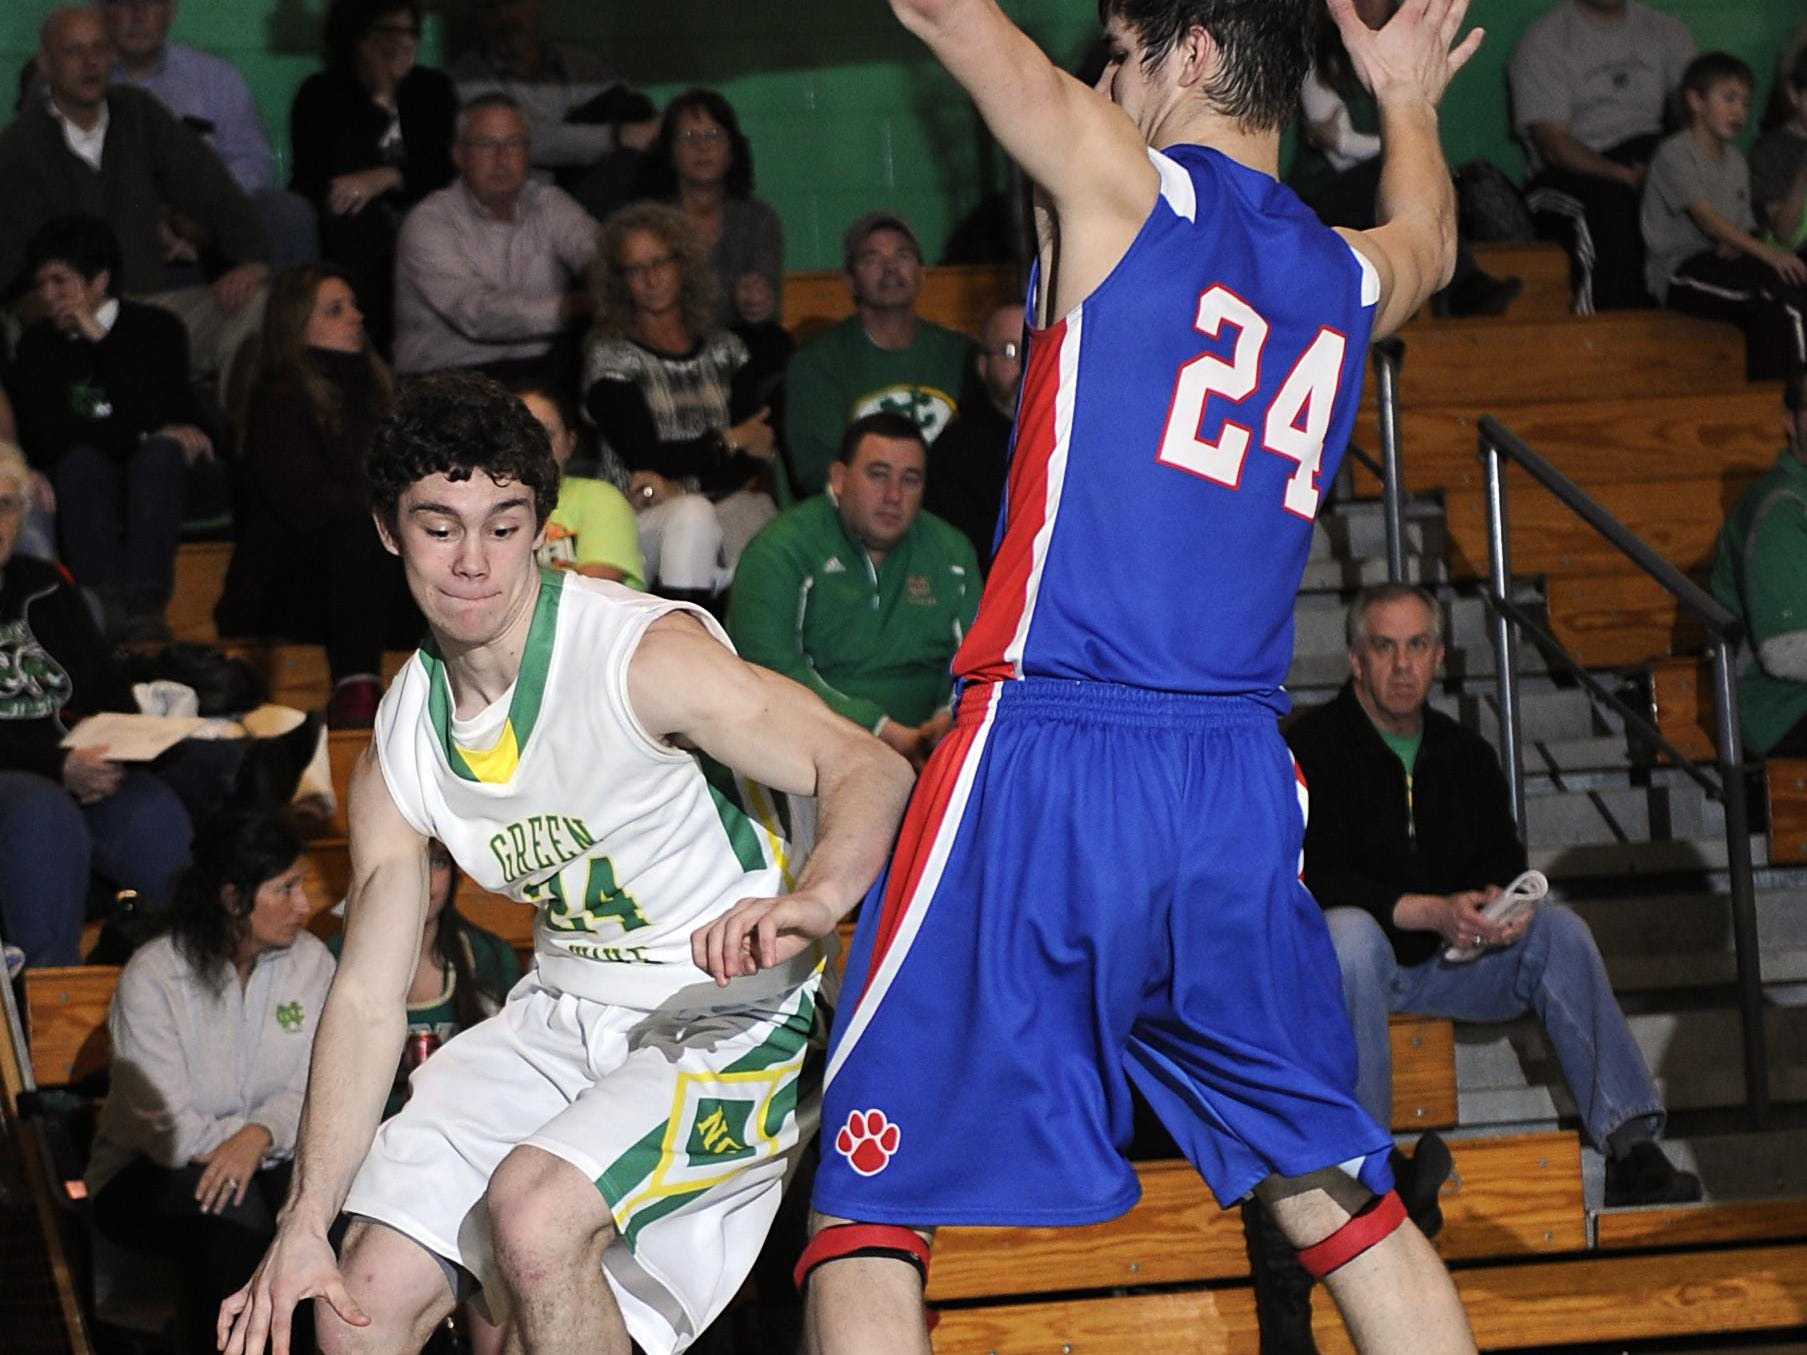 Newark Catholic's Zac Walker dribbles around a Licking Valley defender along the baseline during a 2014-15 game.